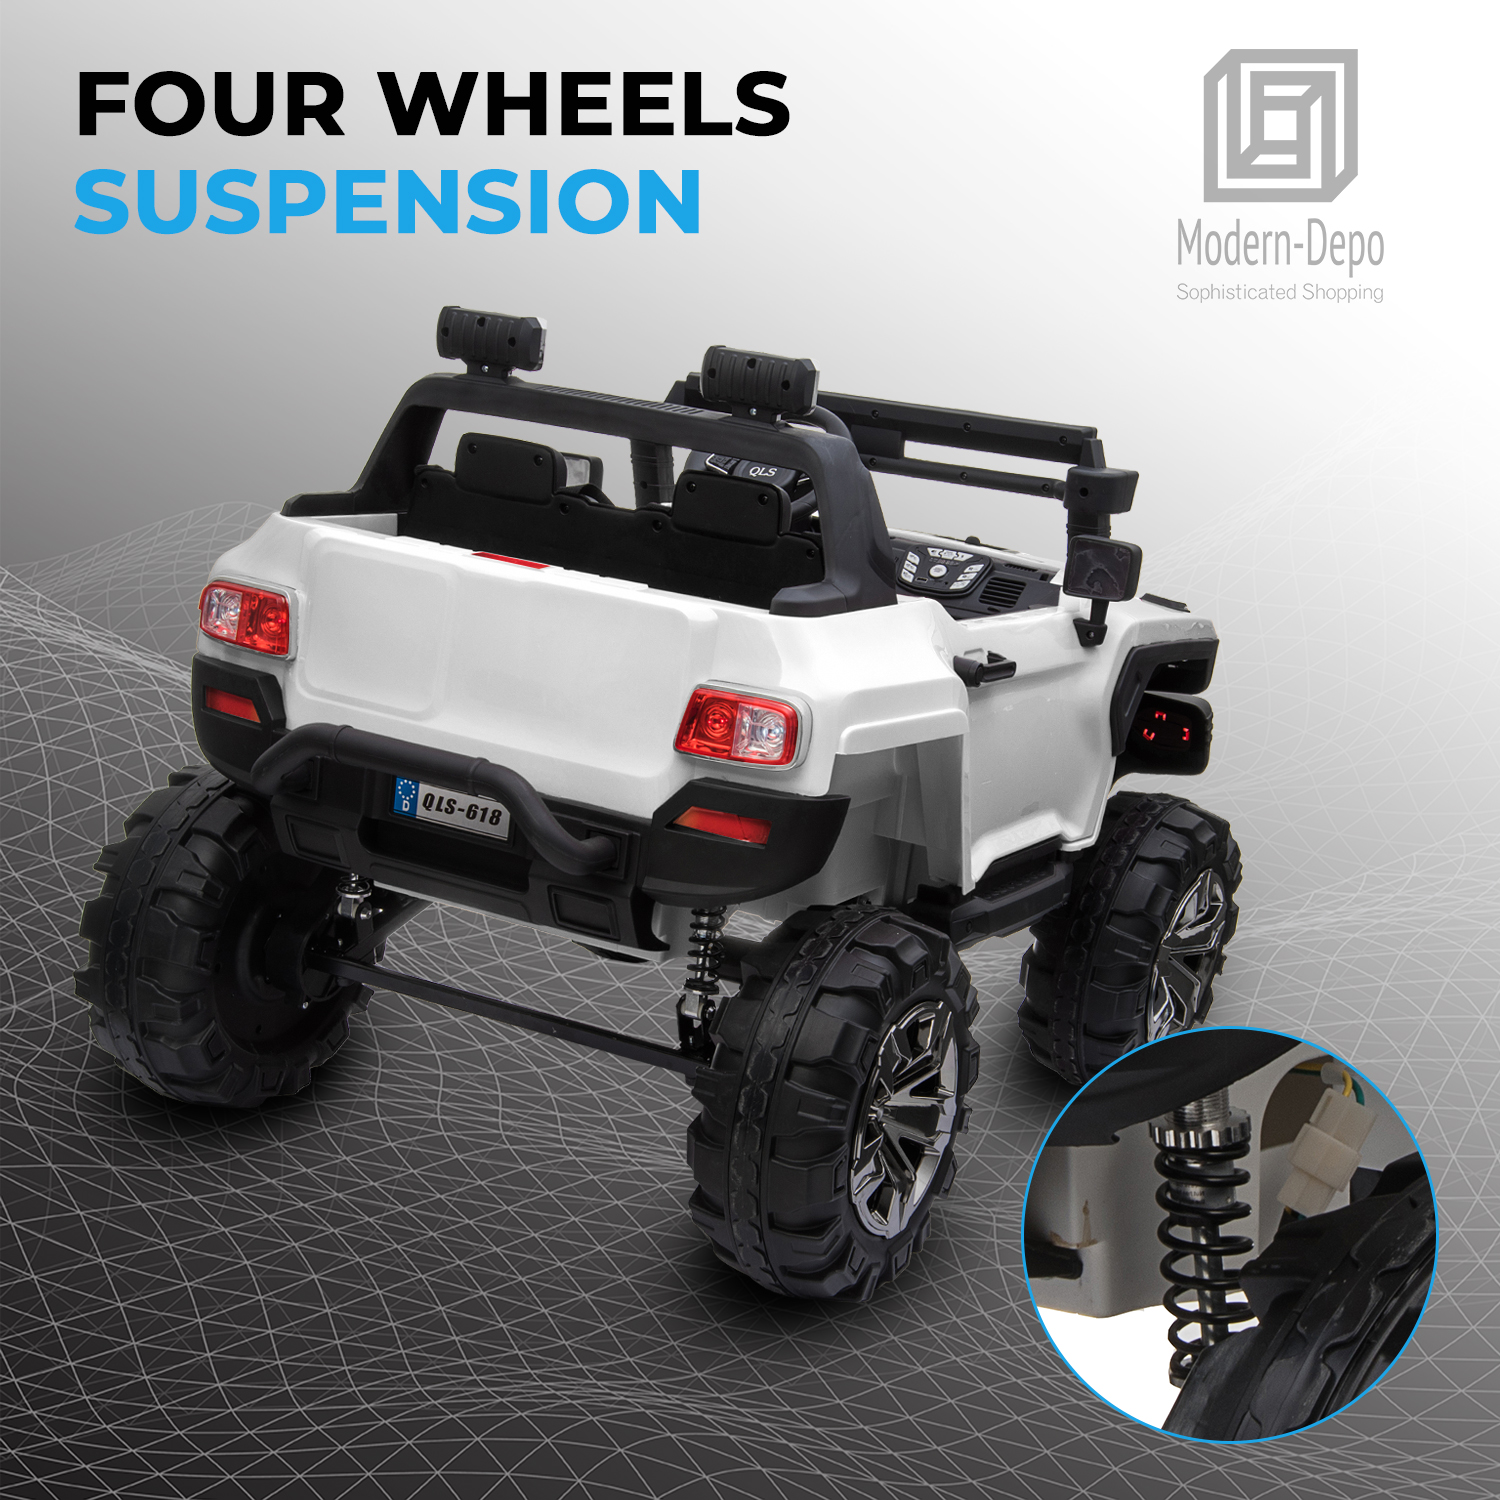 2-Seaters-4-4-Off-Road-Electric-12V-Ride-on-Car-with-Remote-Control miniature 33